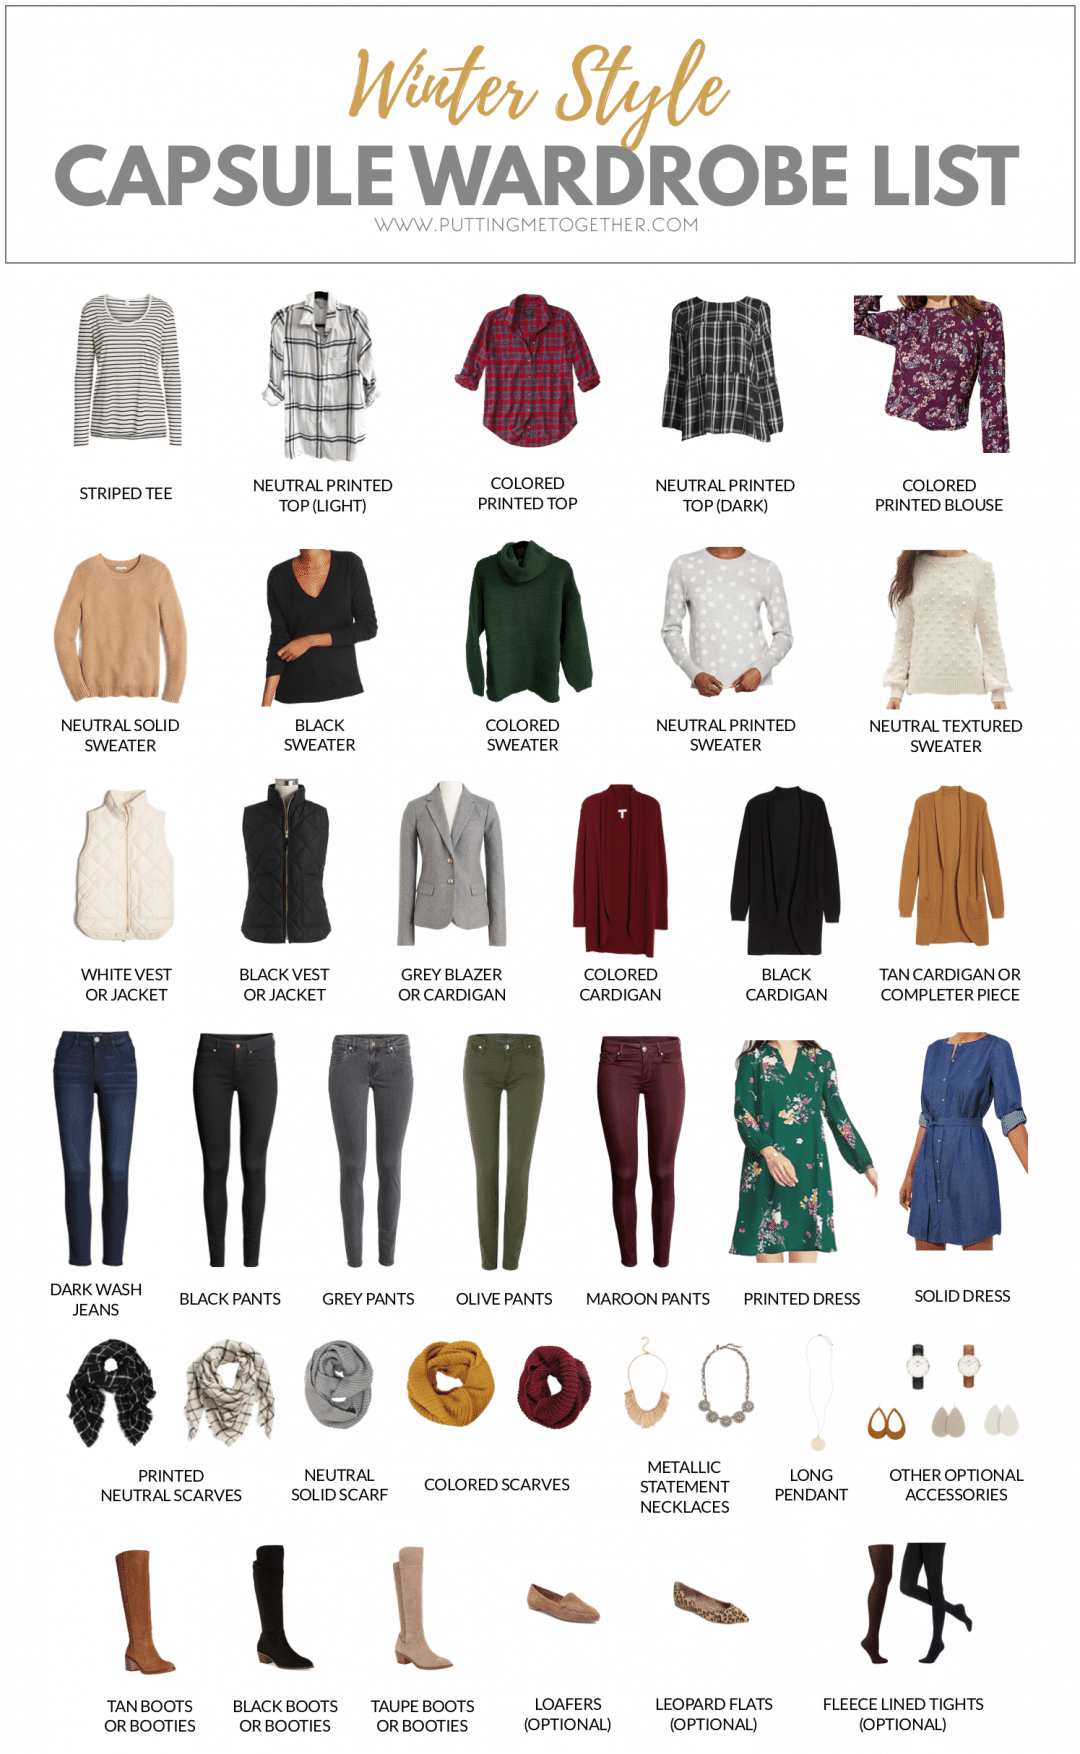 Capsule Wardrobe: Winter Capsule Wardrobe For The PMT Winter 2019 Challenge